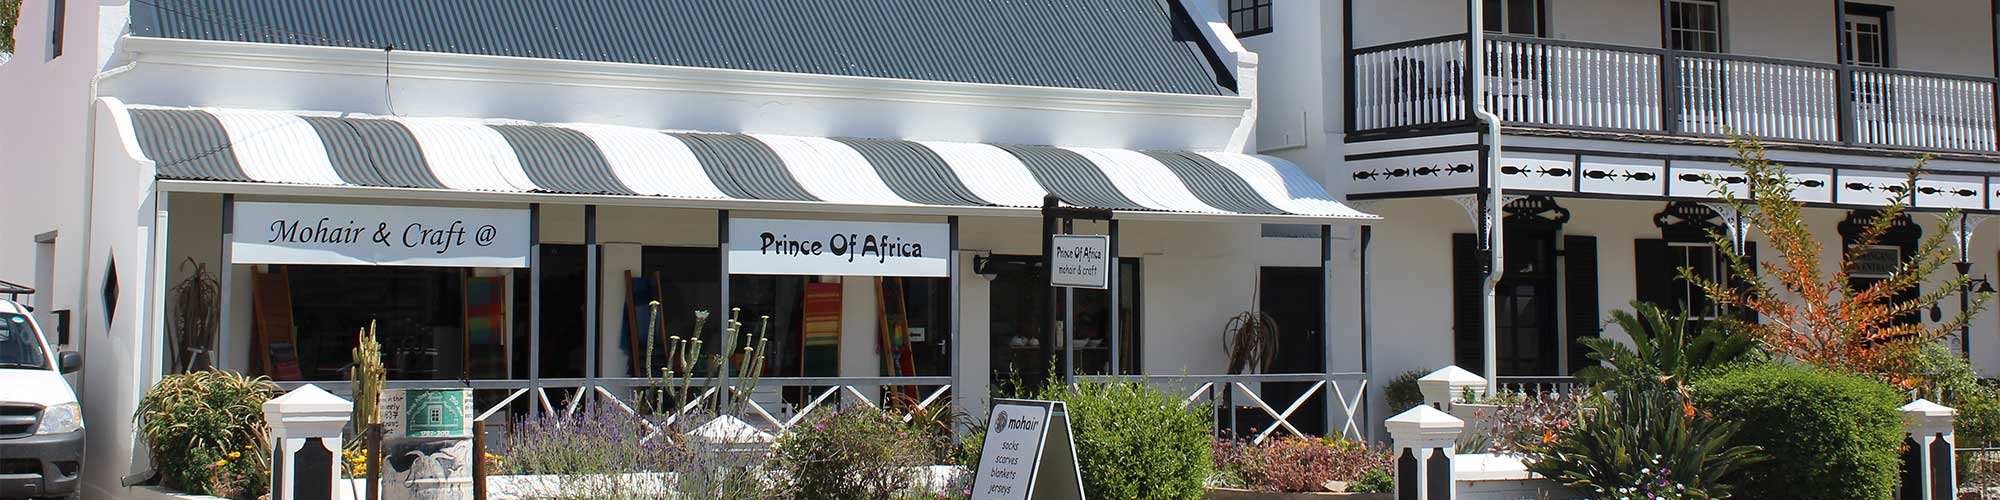 prince of africa 1